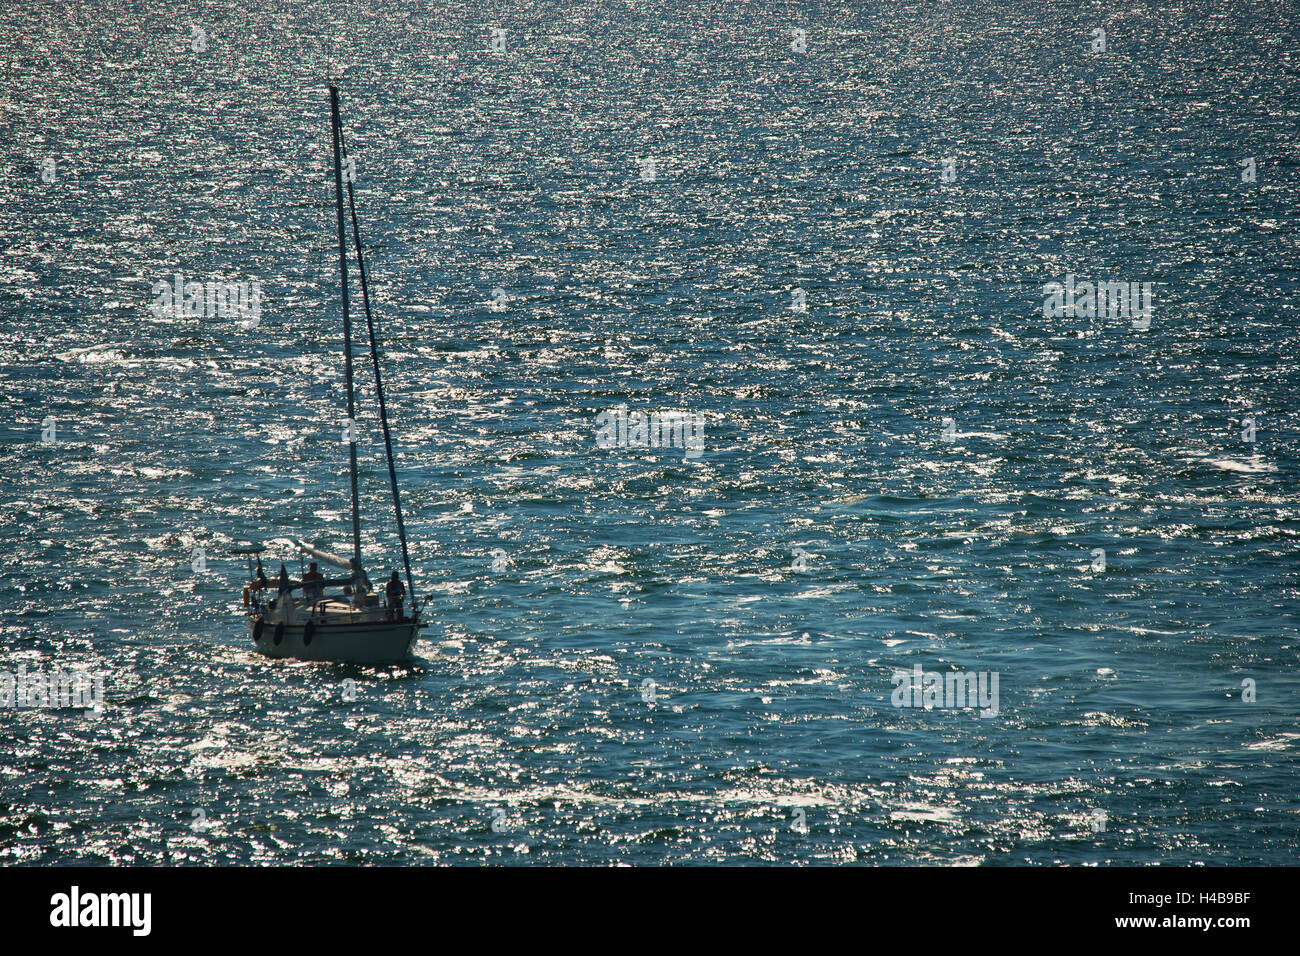 Yachtsman in front of the Gotland Island, Sweden - Stock Image